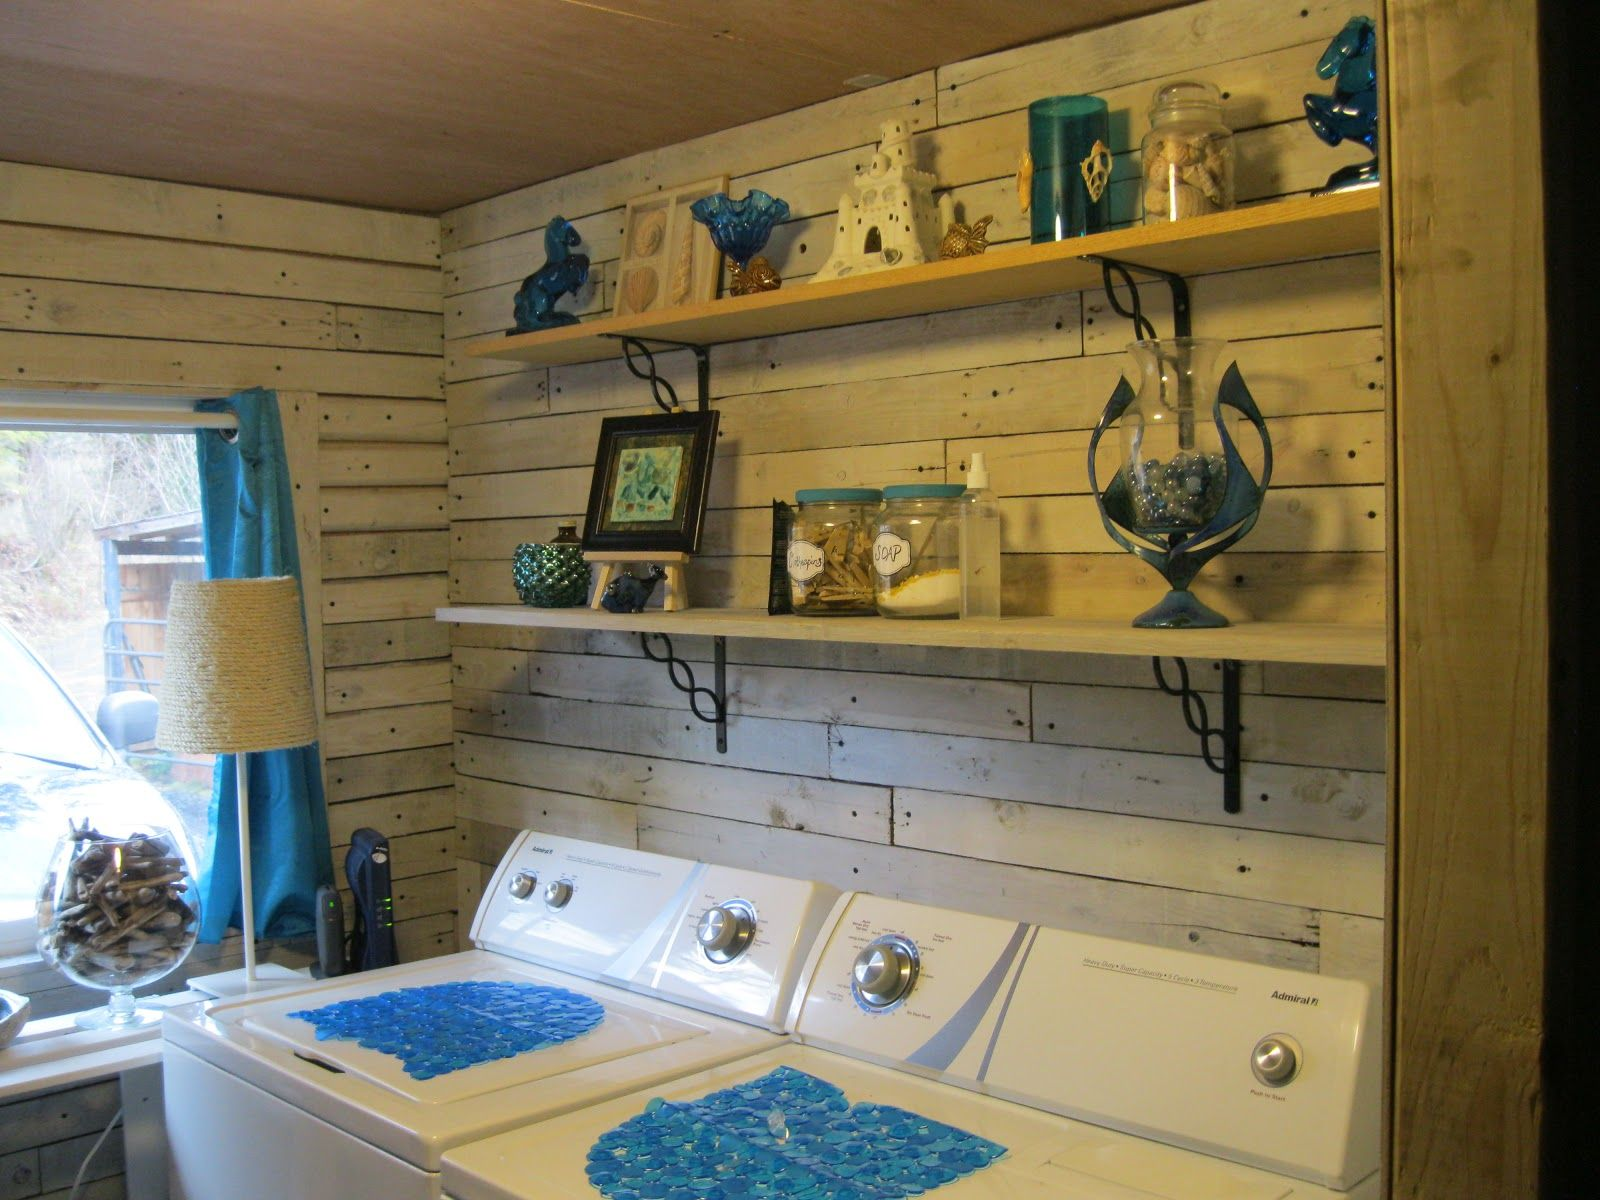 Laundry Room Makeover Ideas For Your Mobile Home Laundry Rooms Laundry And